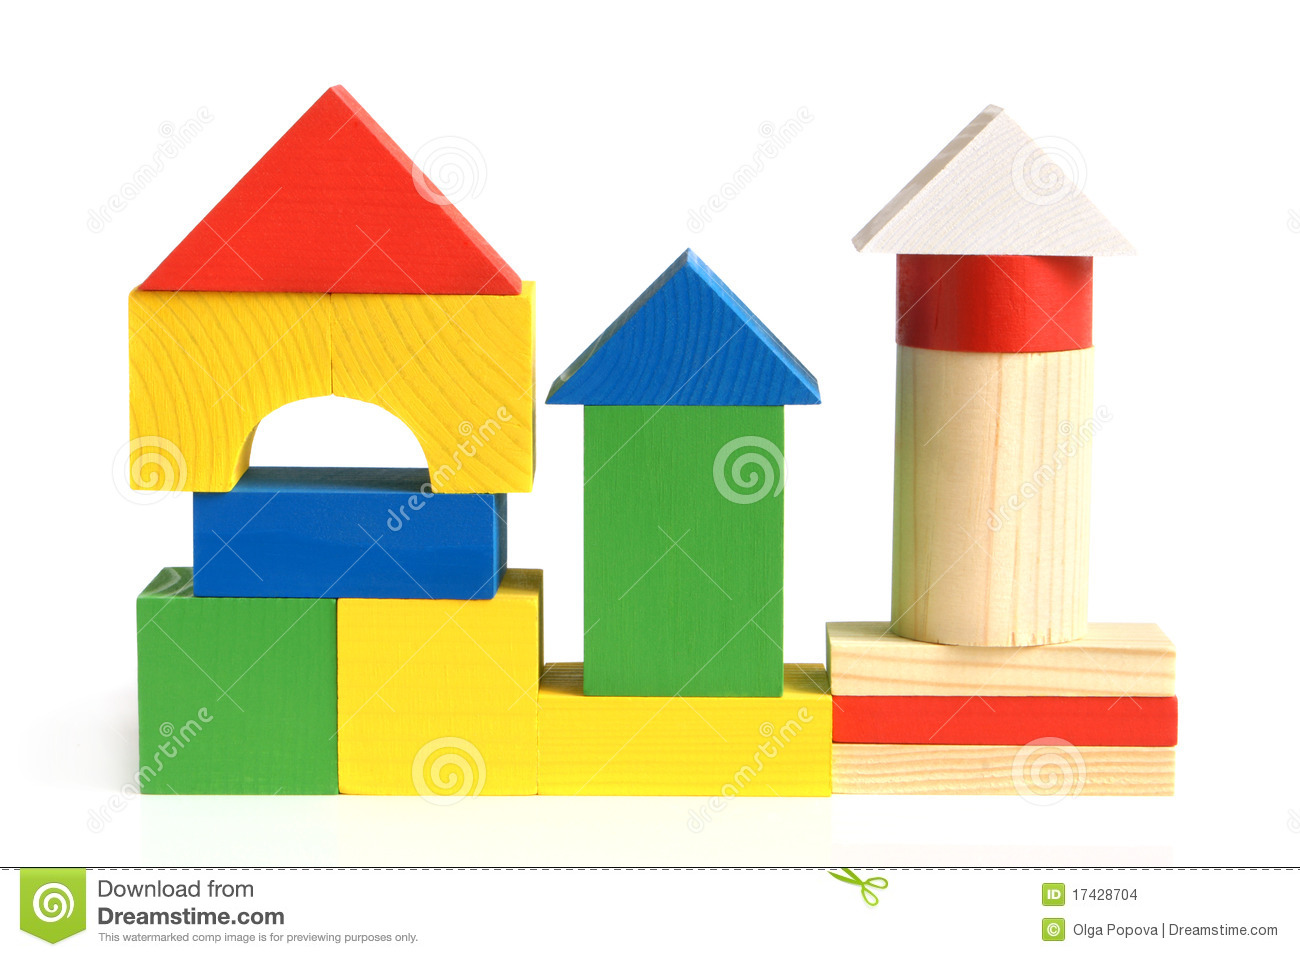 Building a house with wooden blocks clipart jpg library download House Made From Children's Wooden Building Blocks Stock Images ... jpg library download